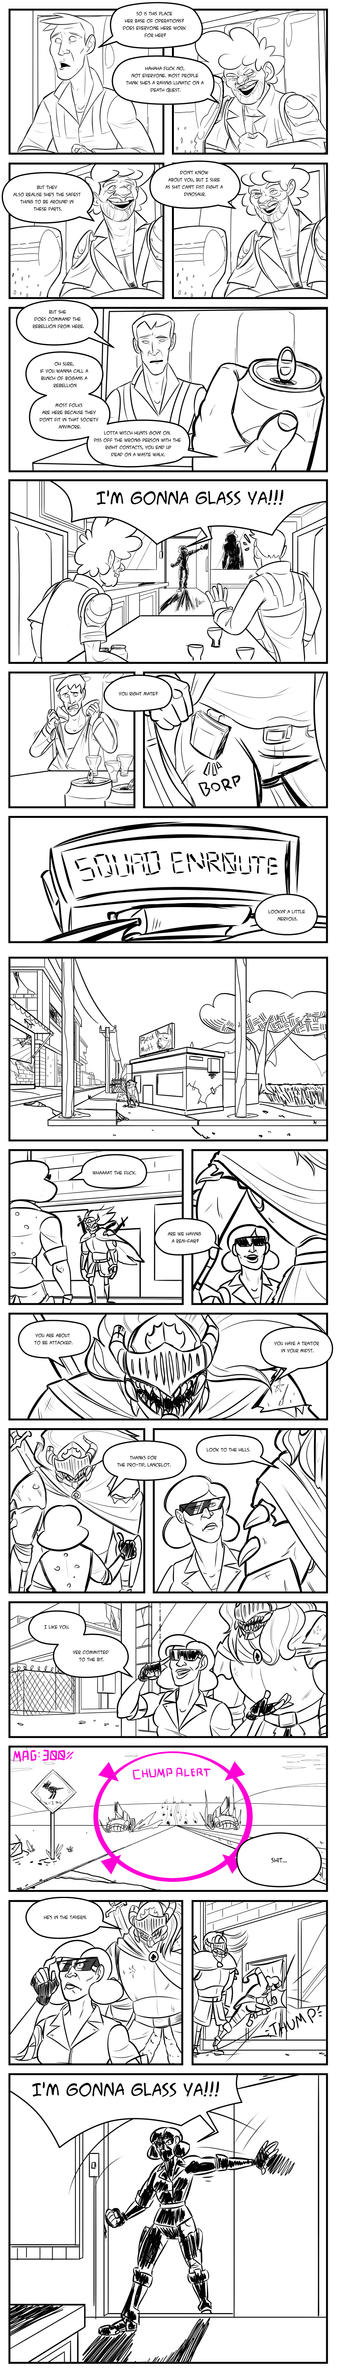 Second Draft OCT - Audition - Page 2 by Angry-Langman